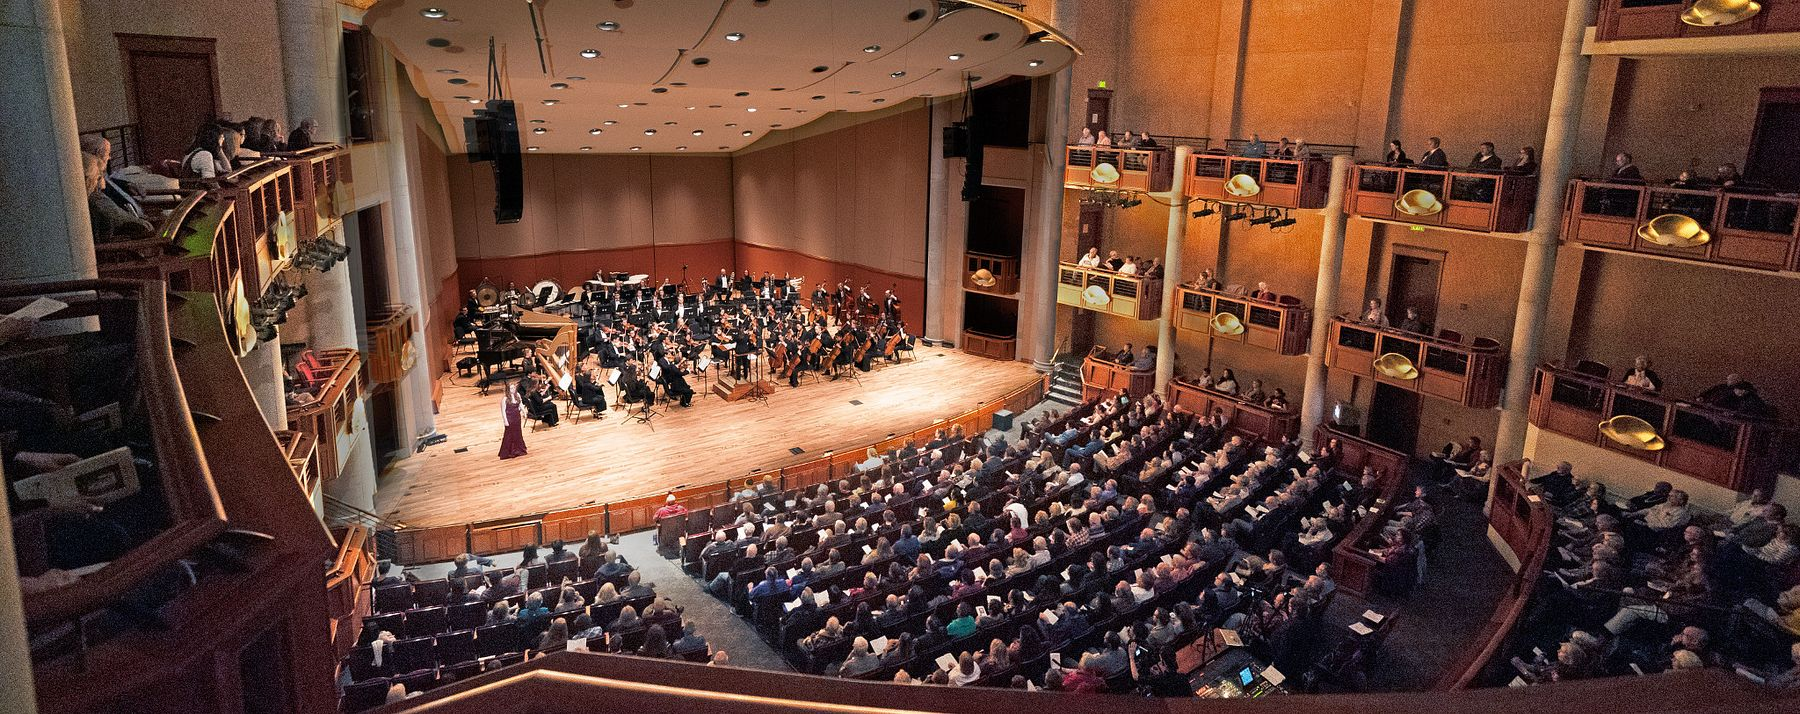 Lamont Symphony Orchestra performing in Gates Concert Hall